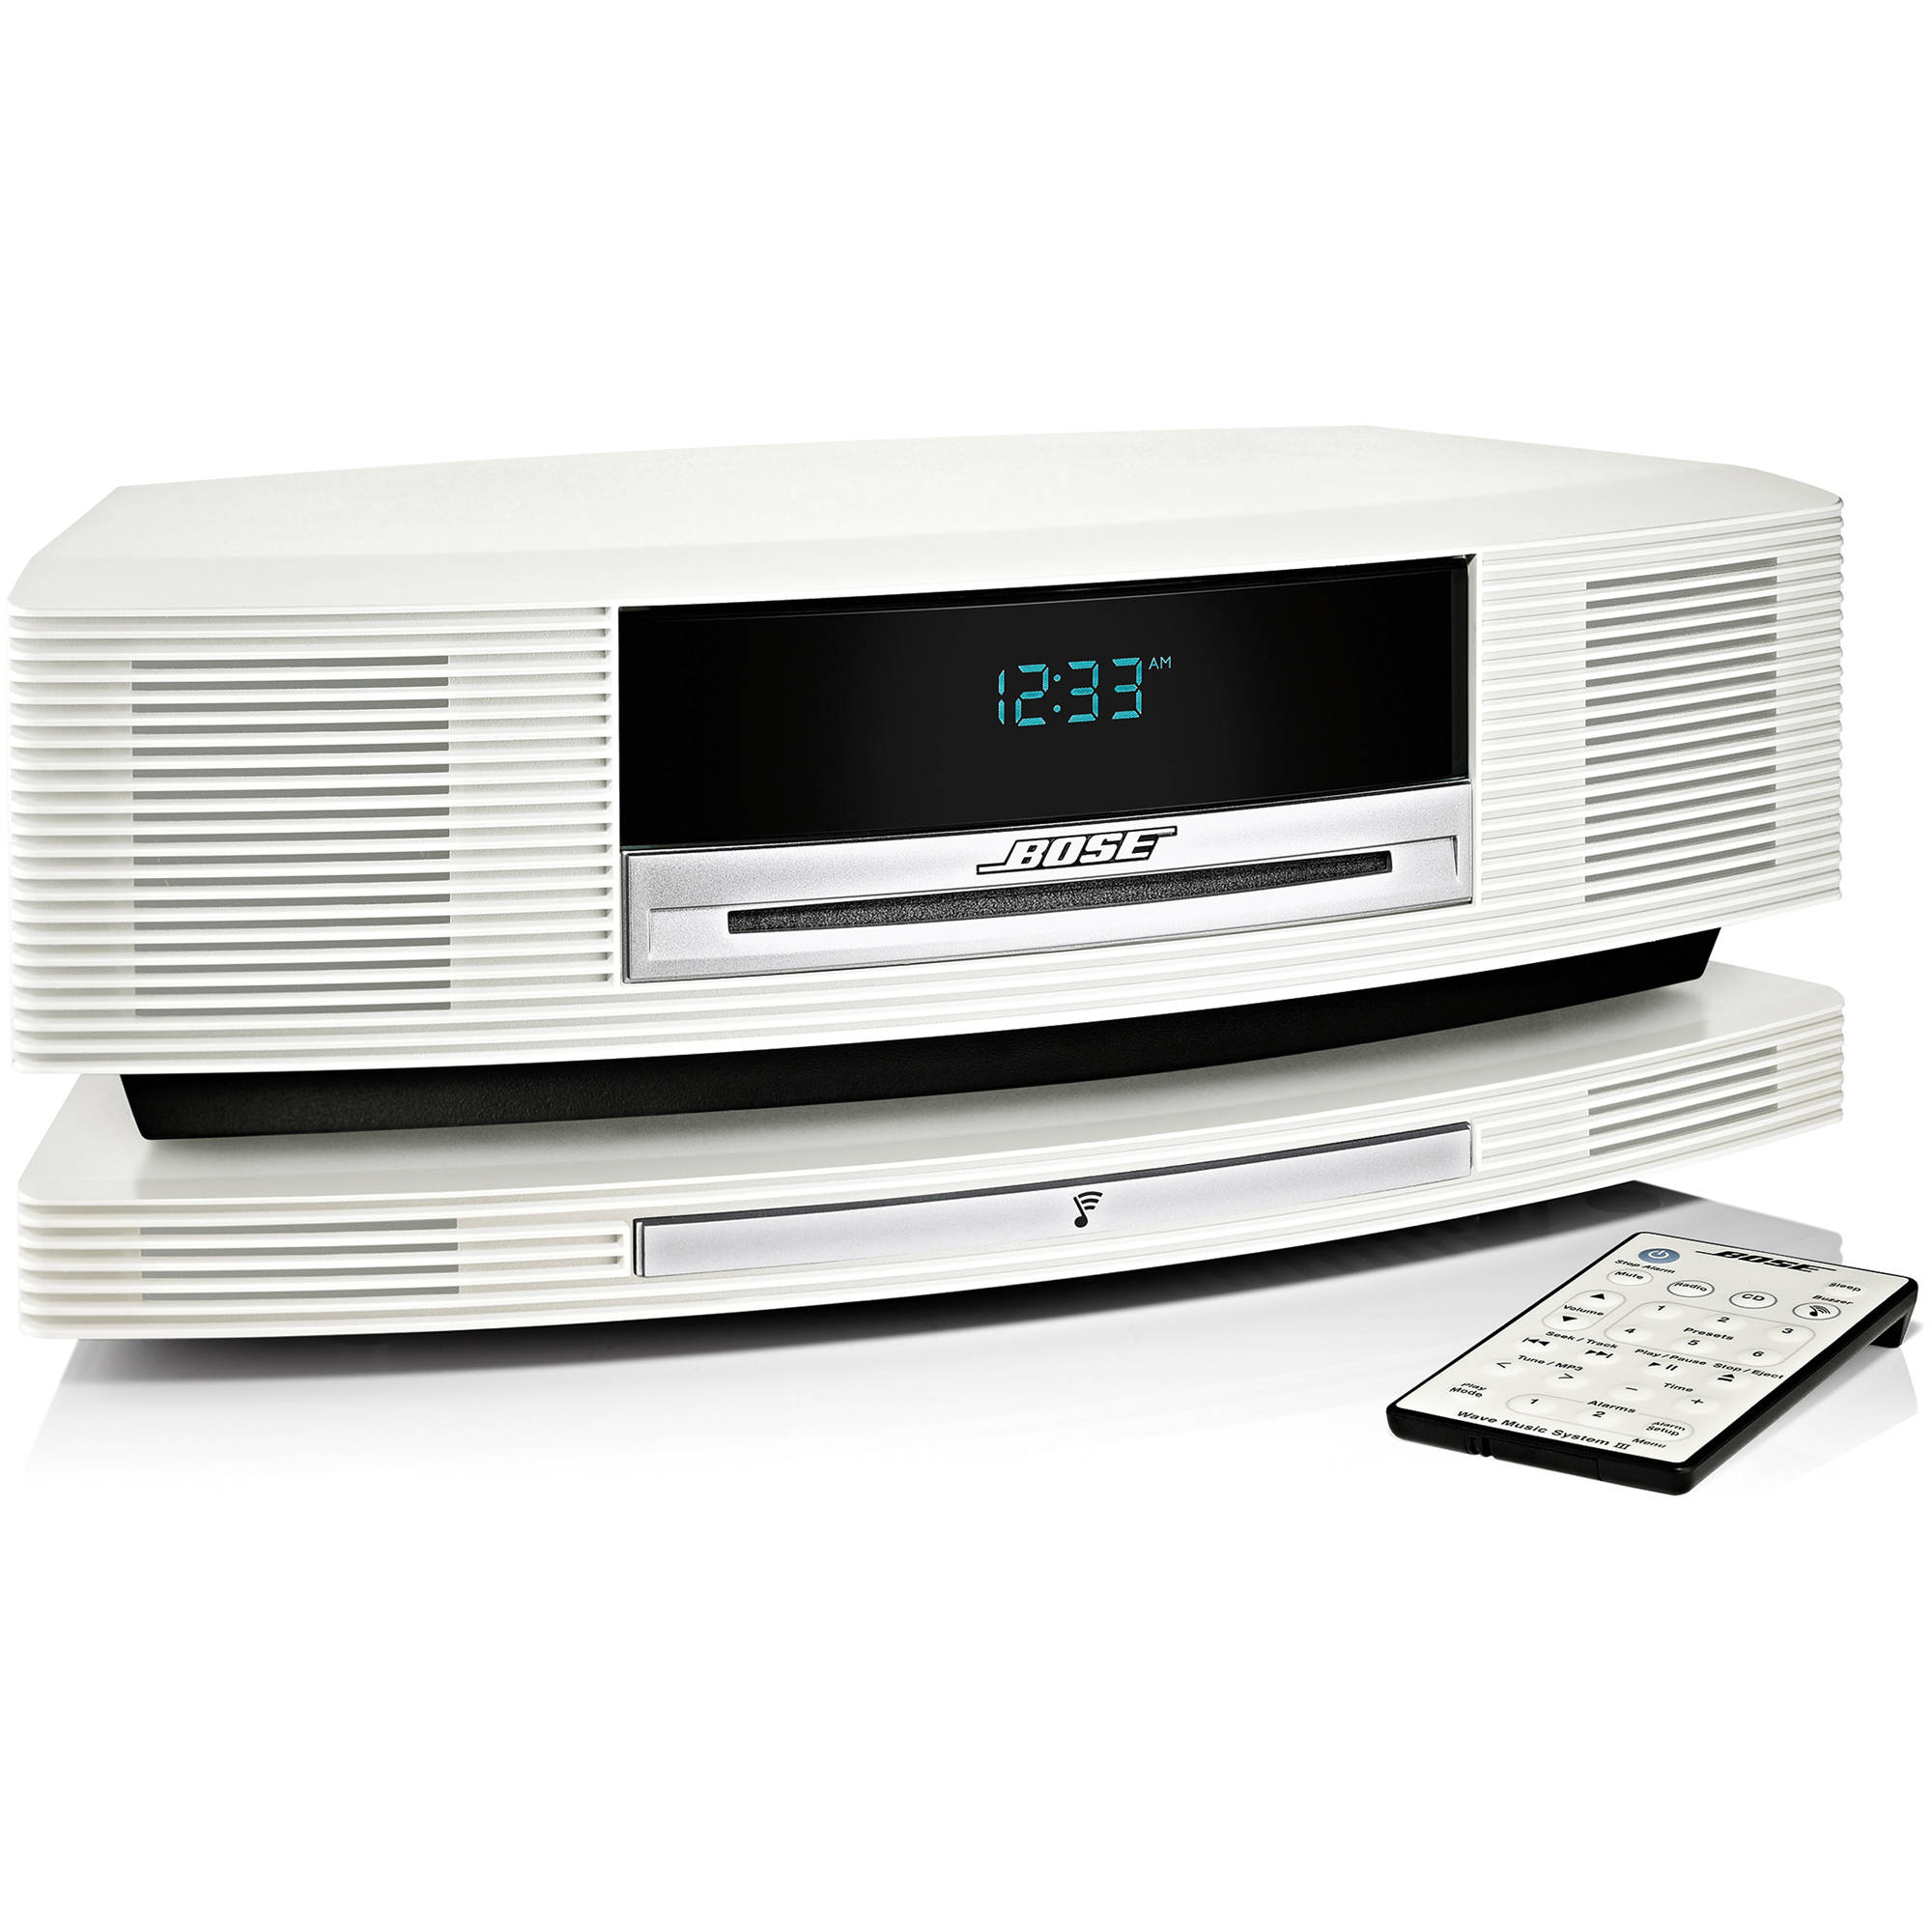 Bose Wave SoundTouch Music System (Platinum White) 369754-1210